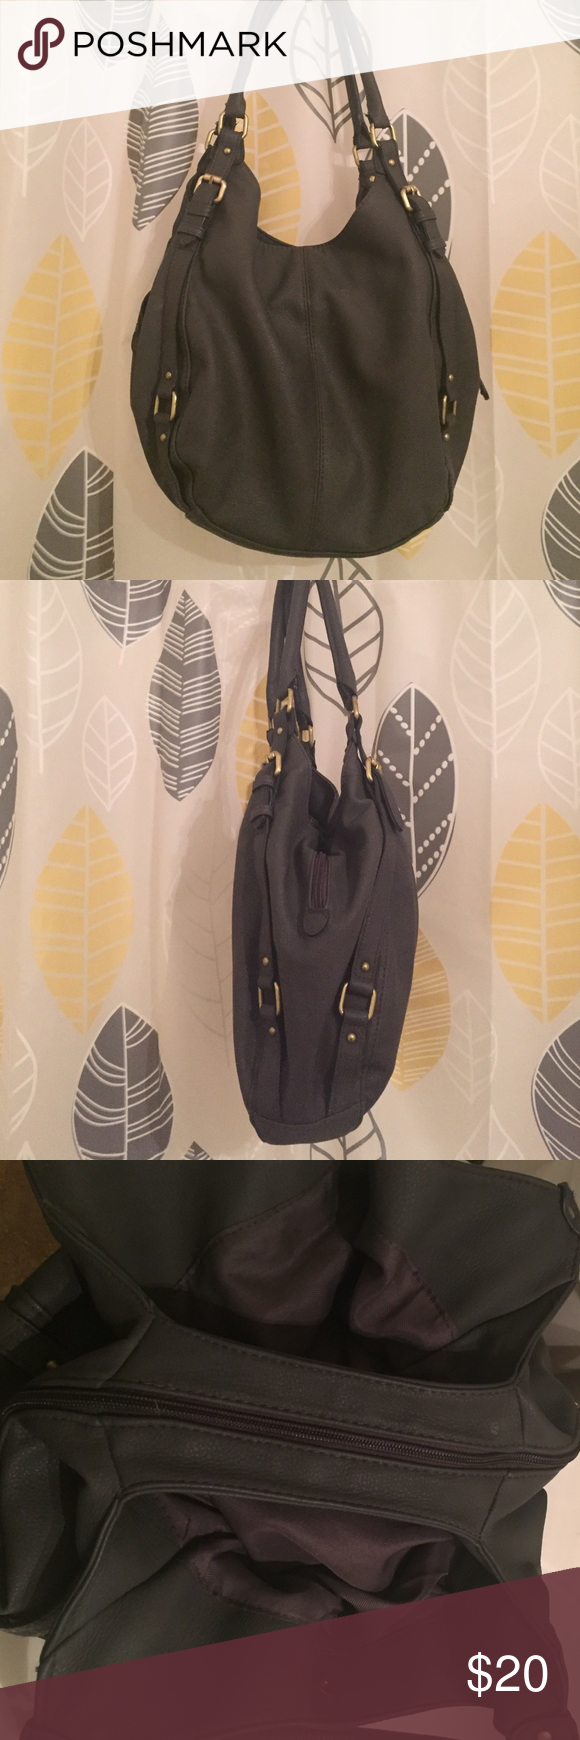 Merona Collection Large Hobo Faux leather bag Leather Grey Merona Medium sized bag has 4 inside pockets 2 zippers and other two pockets have buttons that are magnetic. Farley new only used a few times. Bags Shoulder Bags